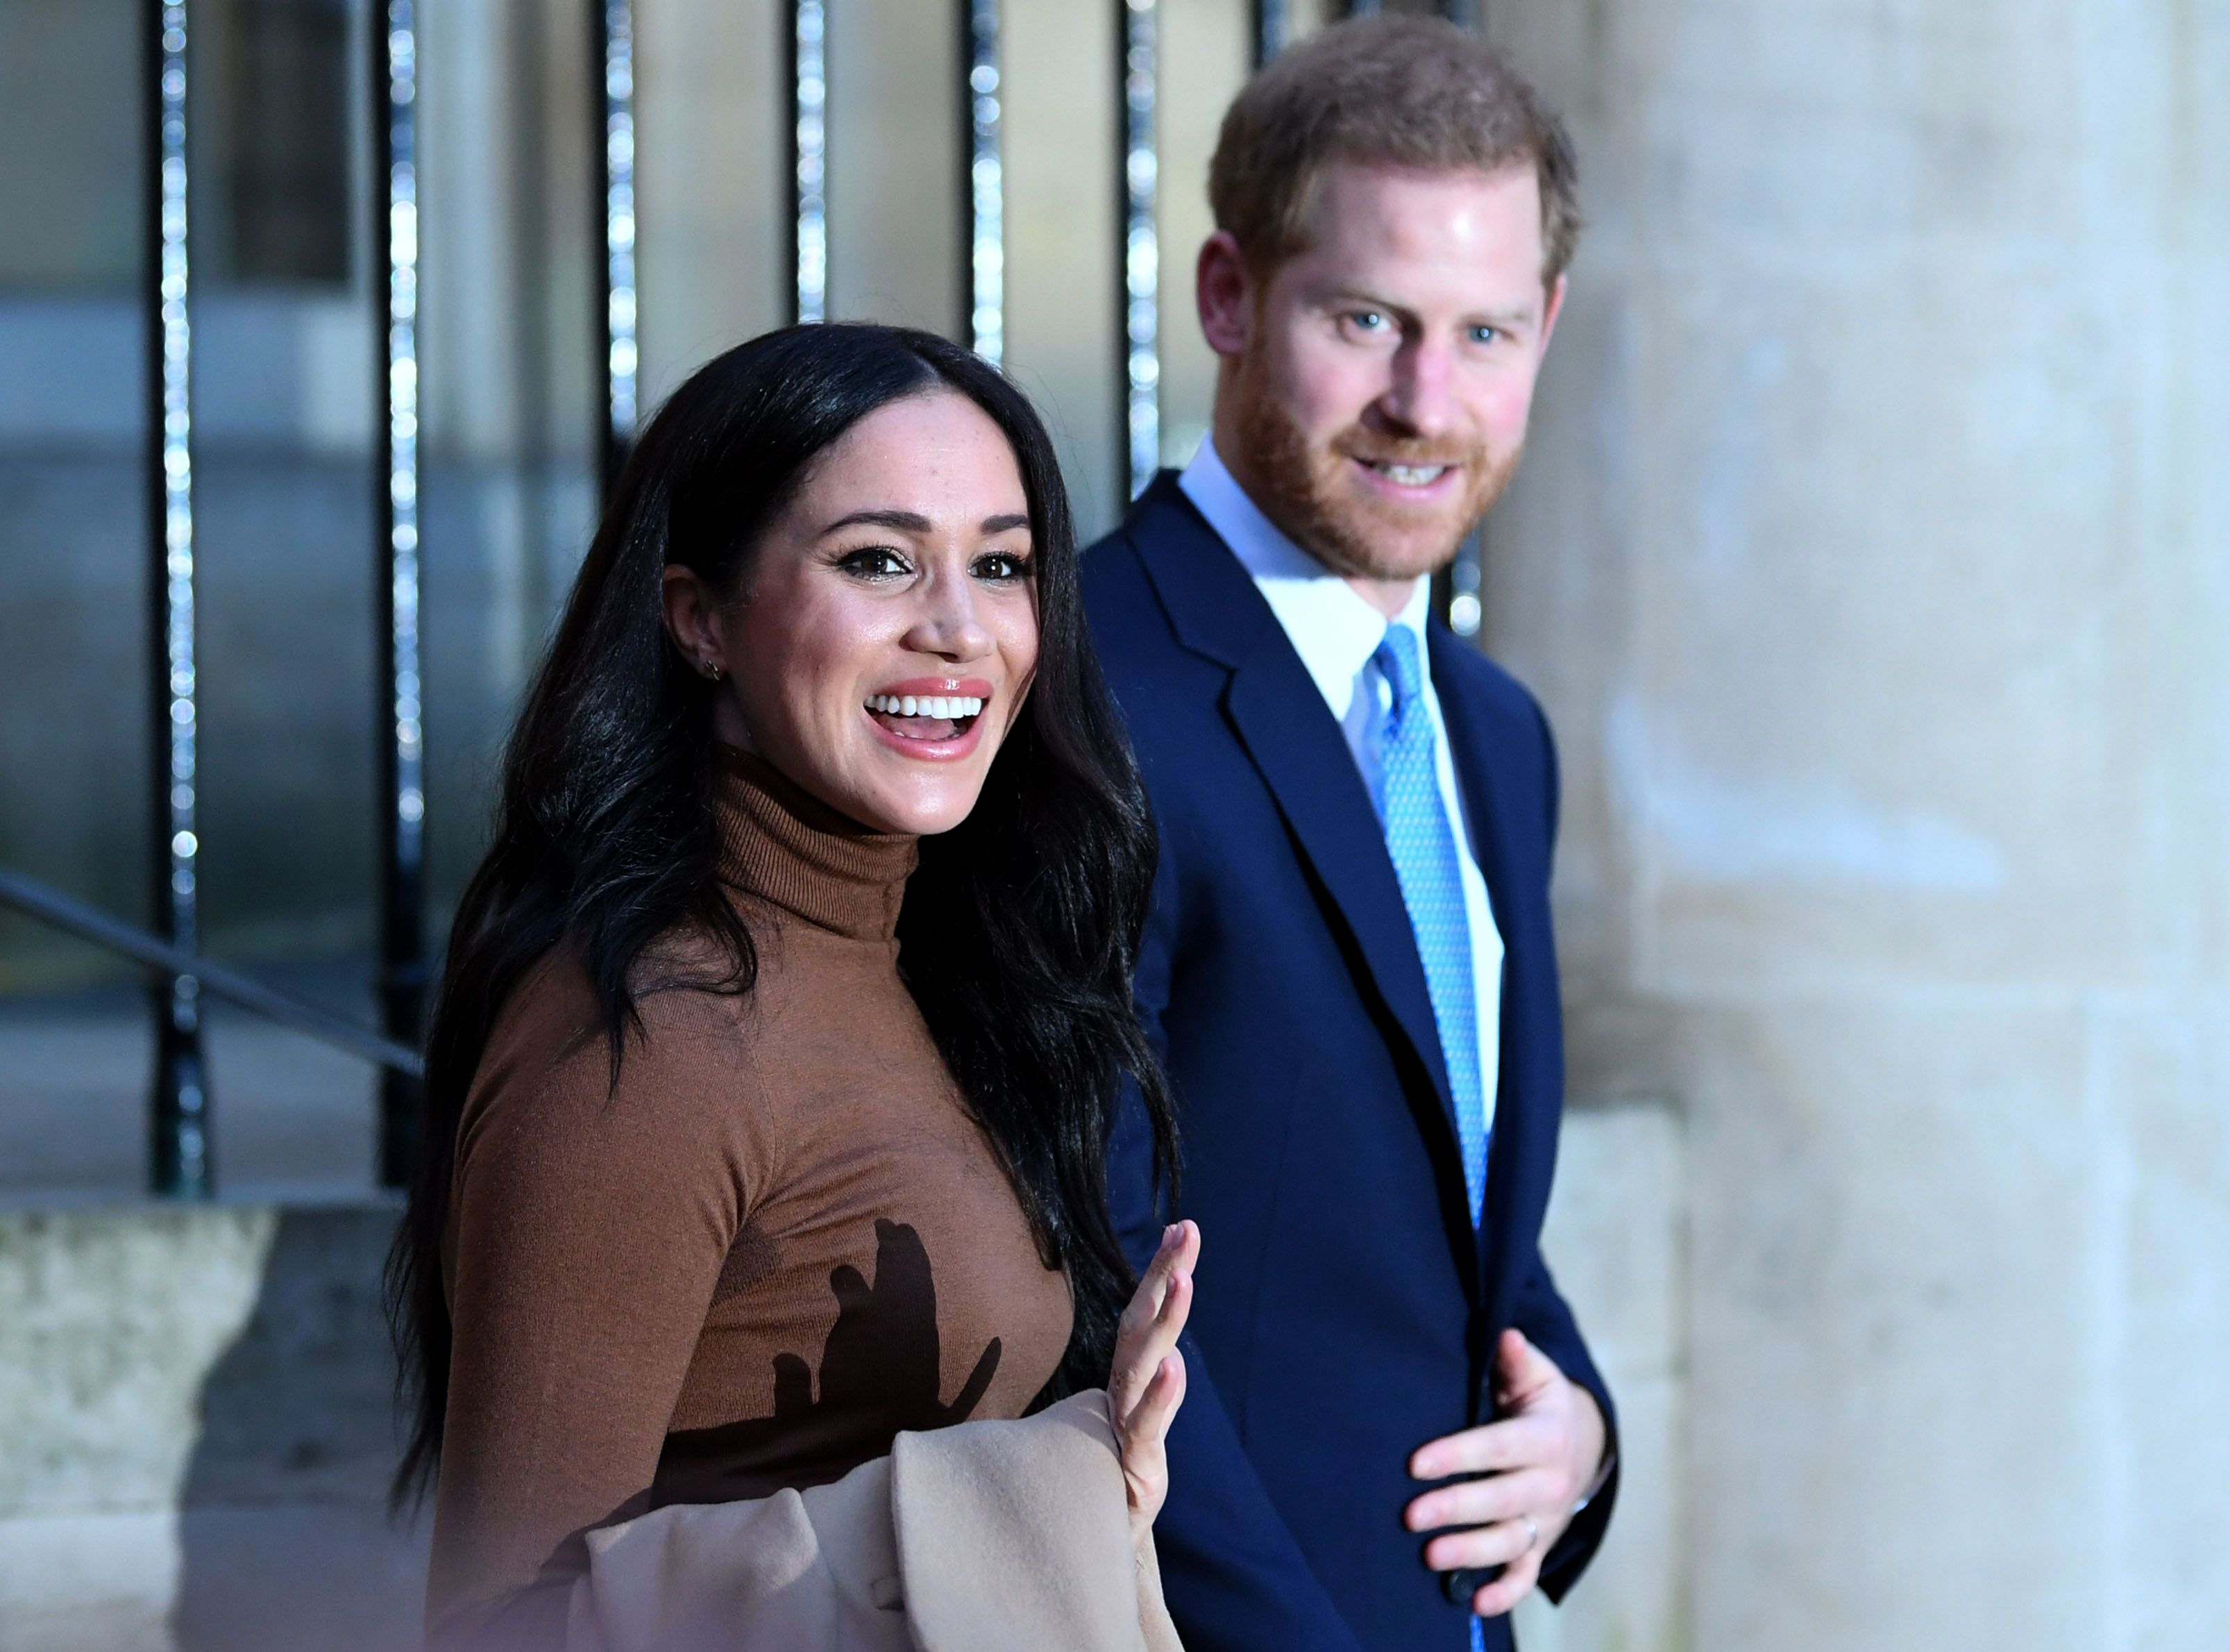 Meghan Markle and Prince Harry outside of Canada House on January 7, 2020 | Getty Images